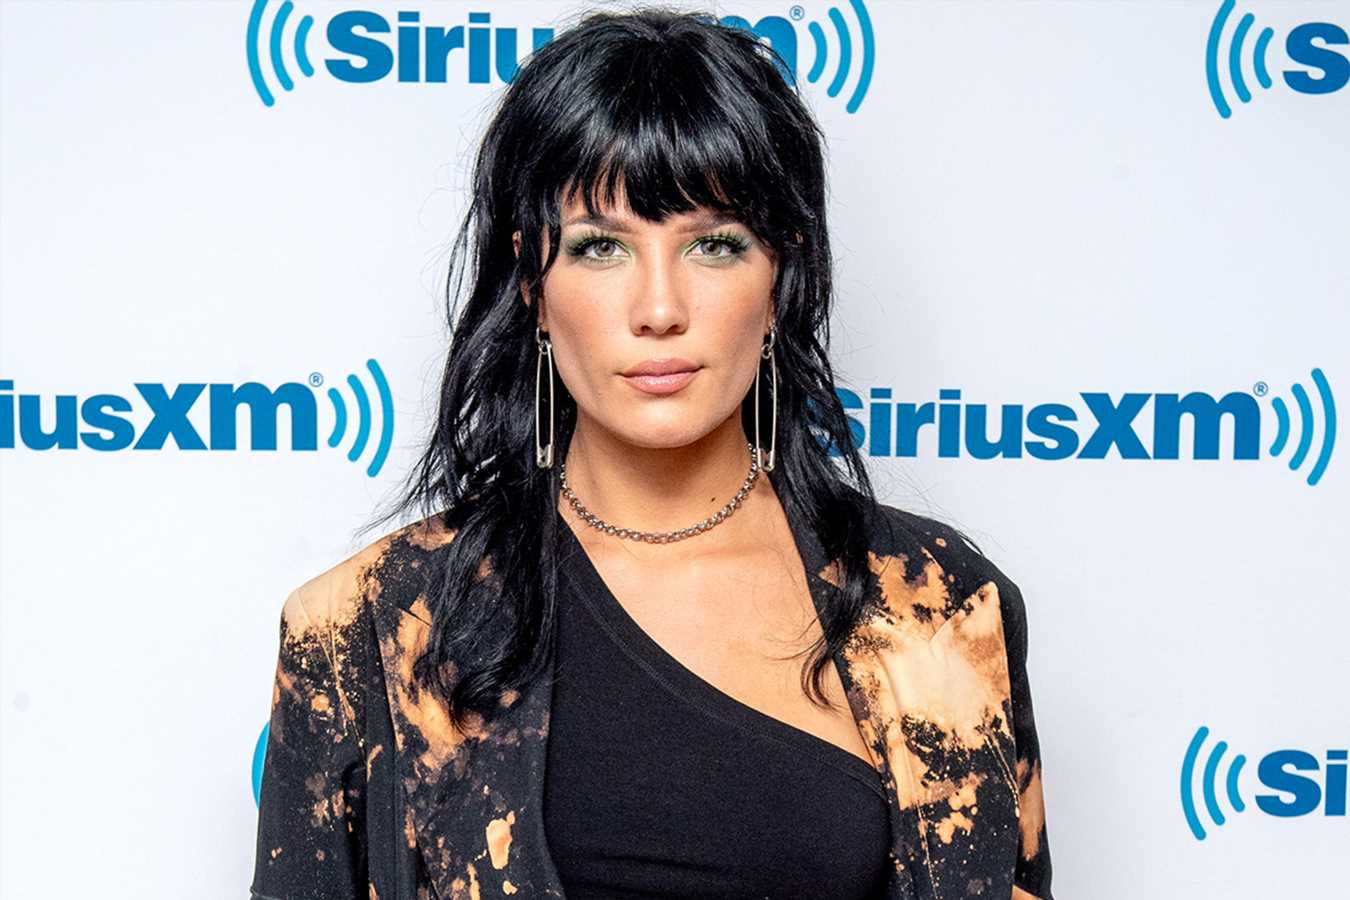 Halsey Reveals She Quit Smoking After 10 Years: 'I'm So Happy I Did It'